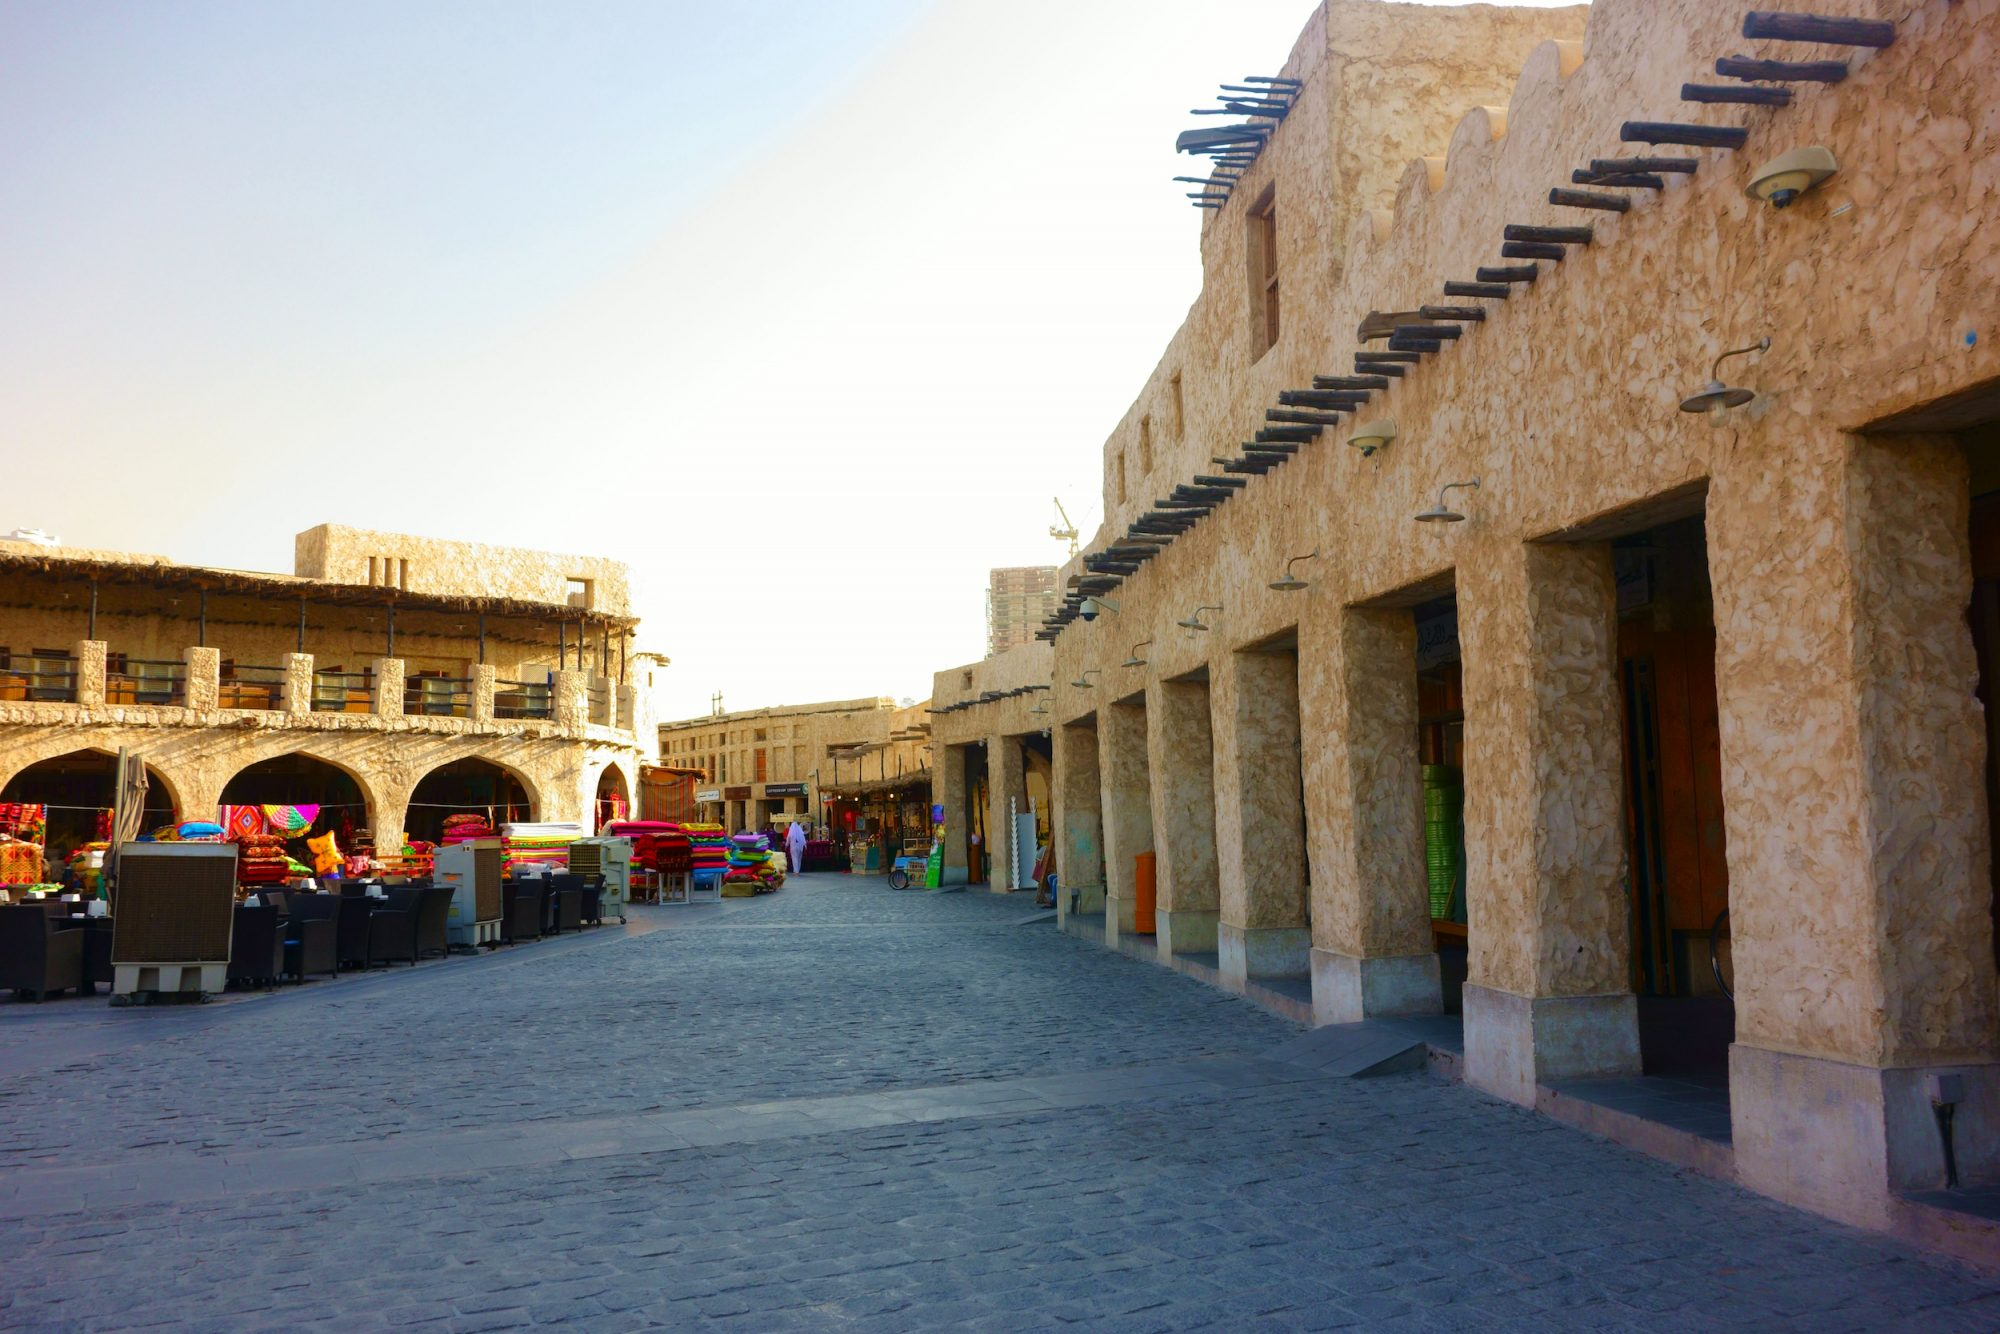 Souq Waqif: 10 things to see and do at Doha's 'standing market'